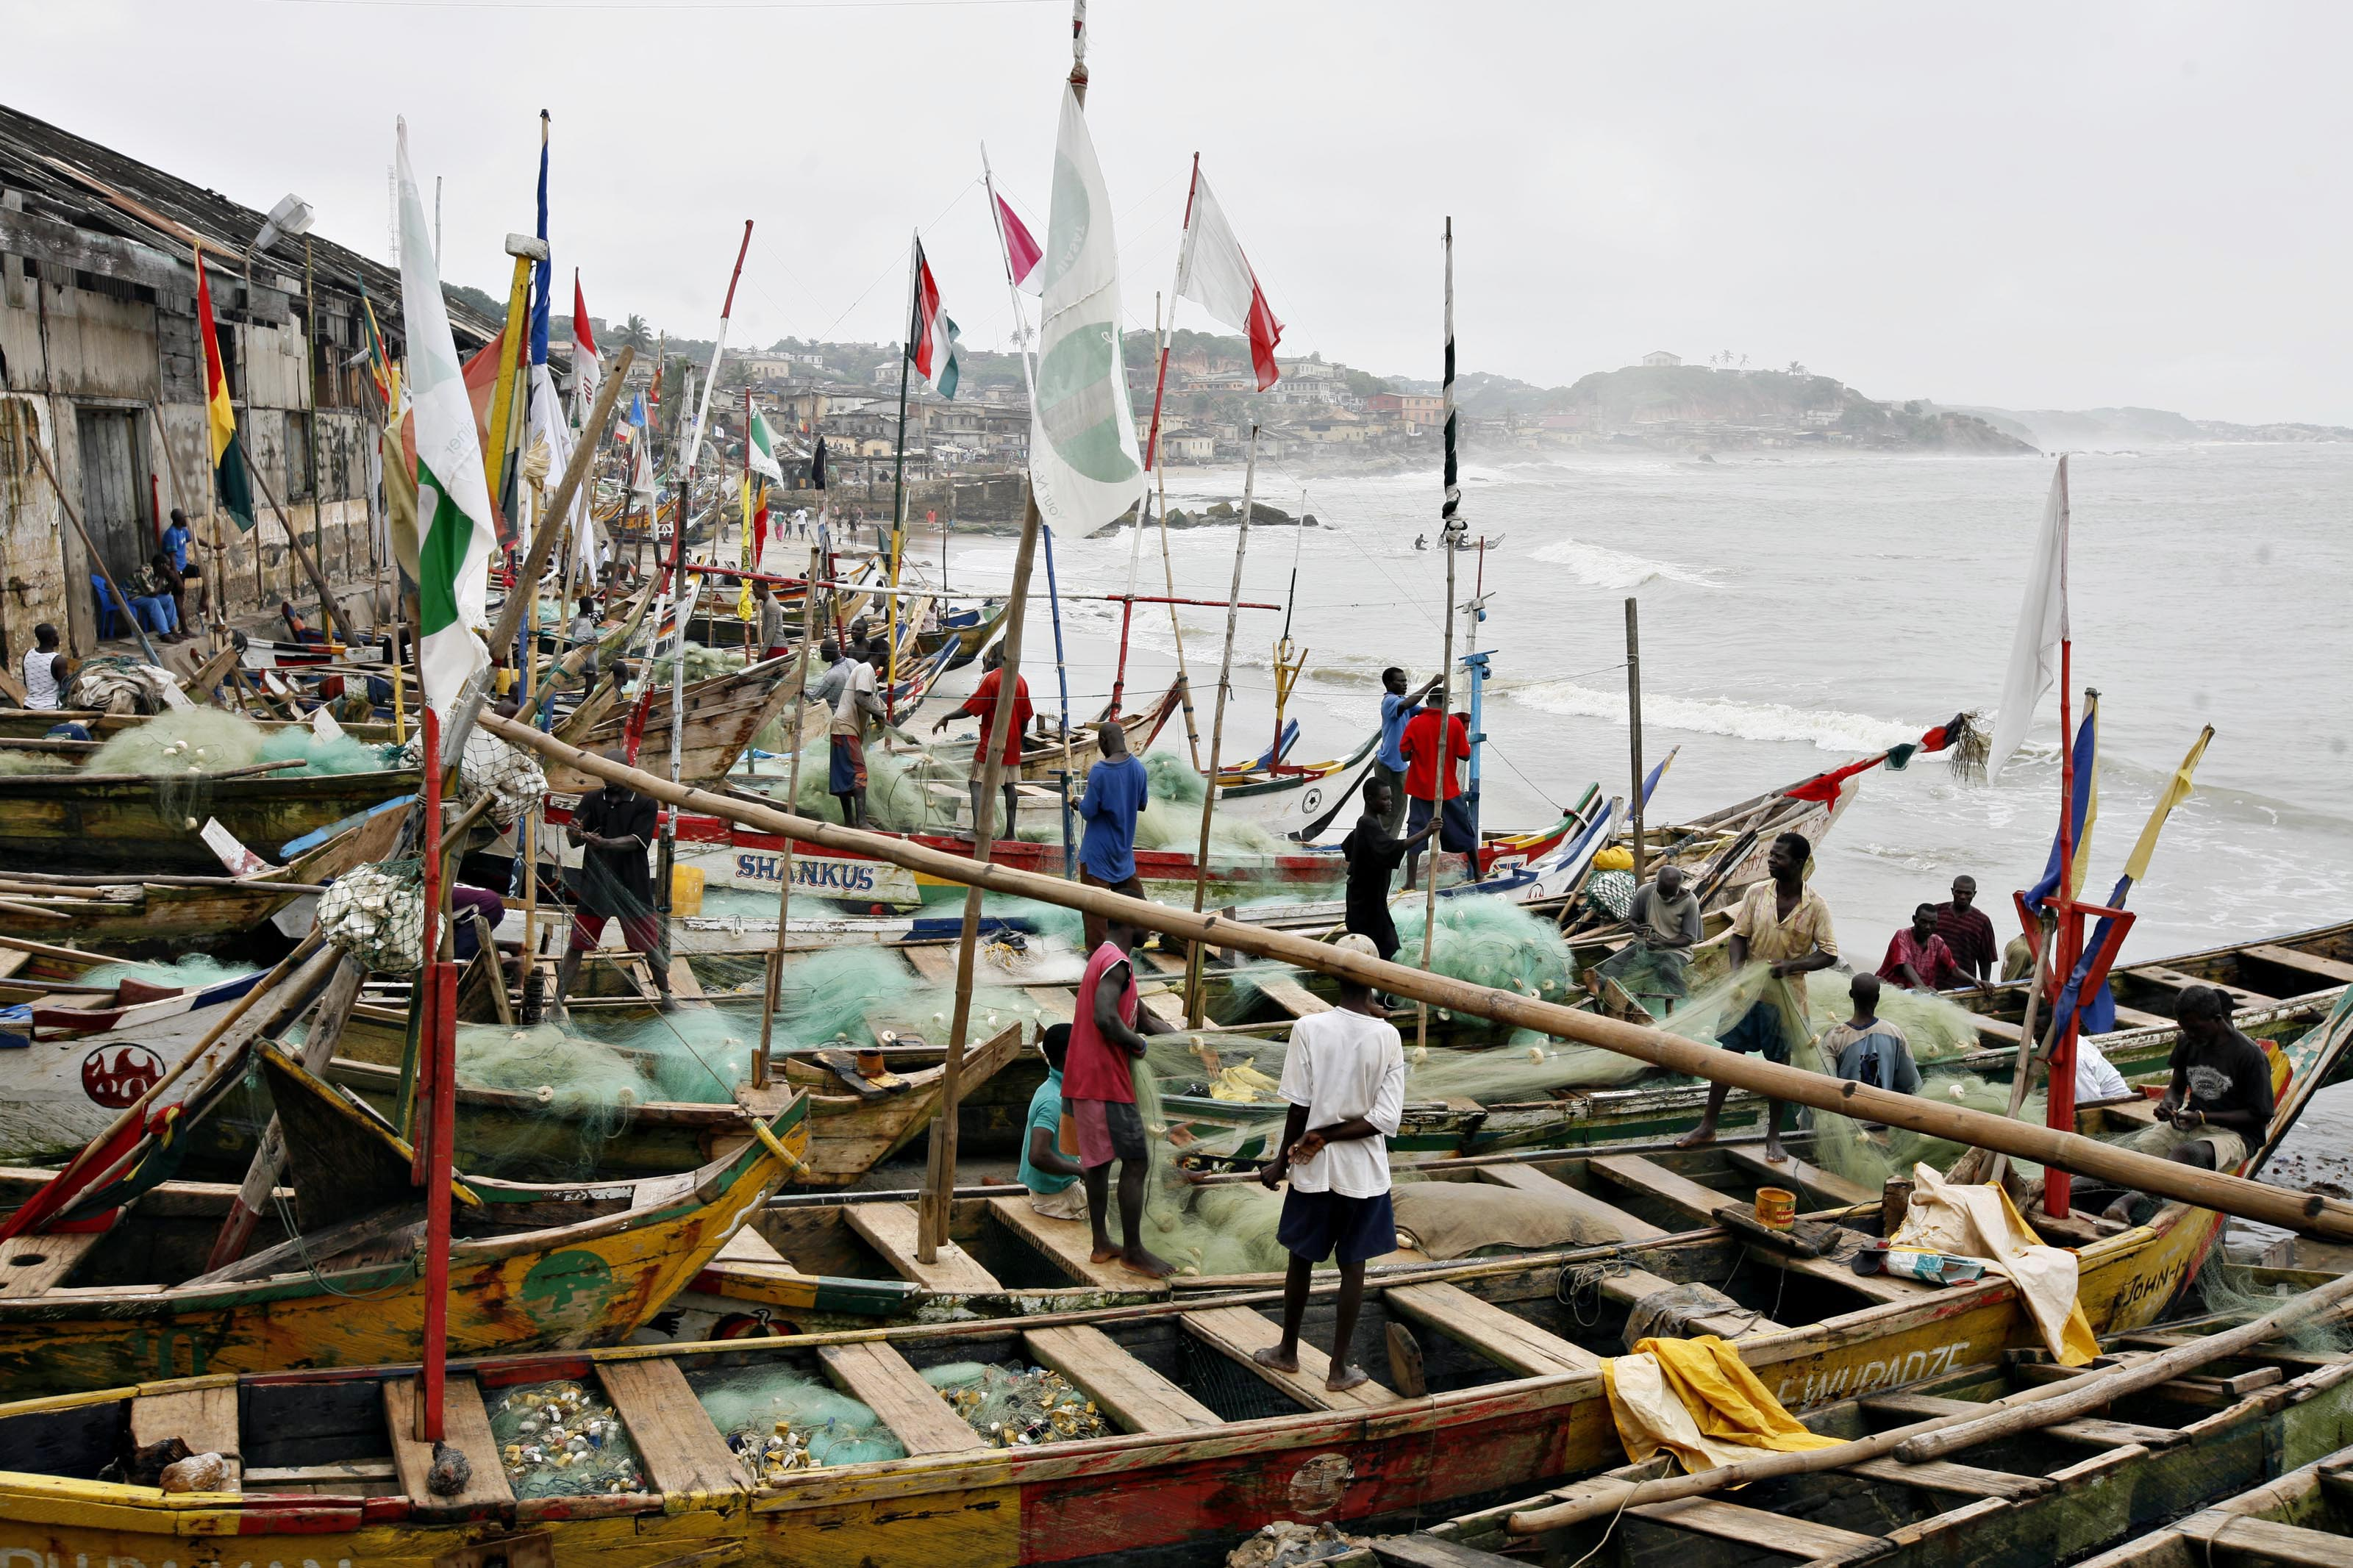 General view of the local fishing community at Cape Coast in Ghana